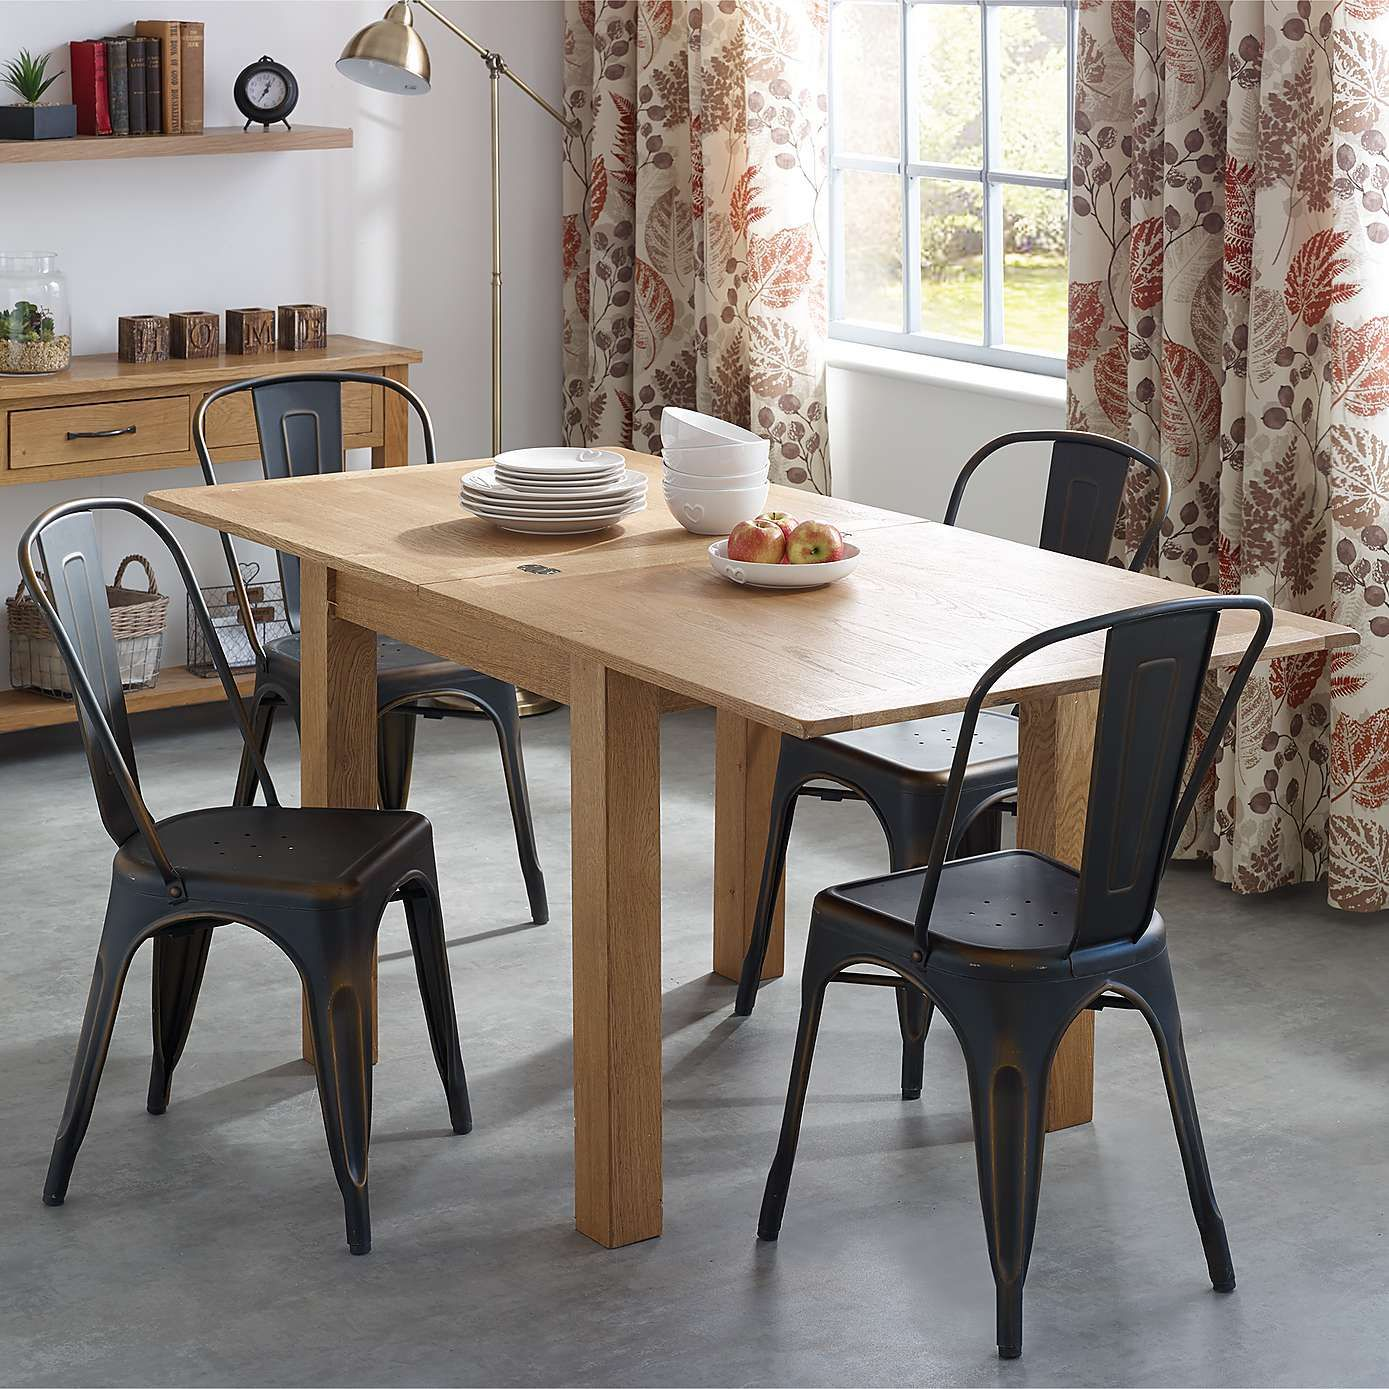 ddc8b77bfd9 Sidmouth Oak Flip Top Dining Table